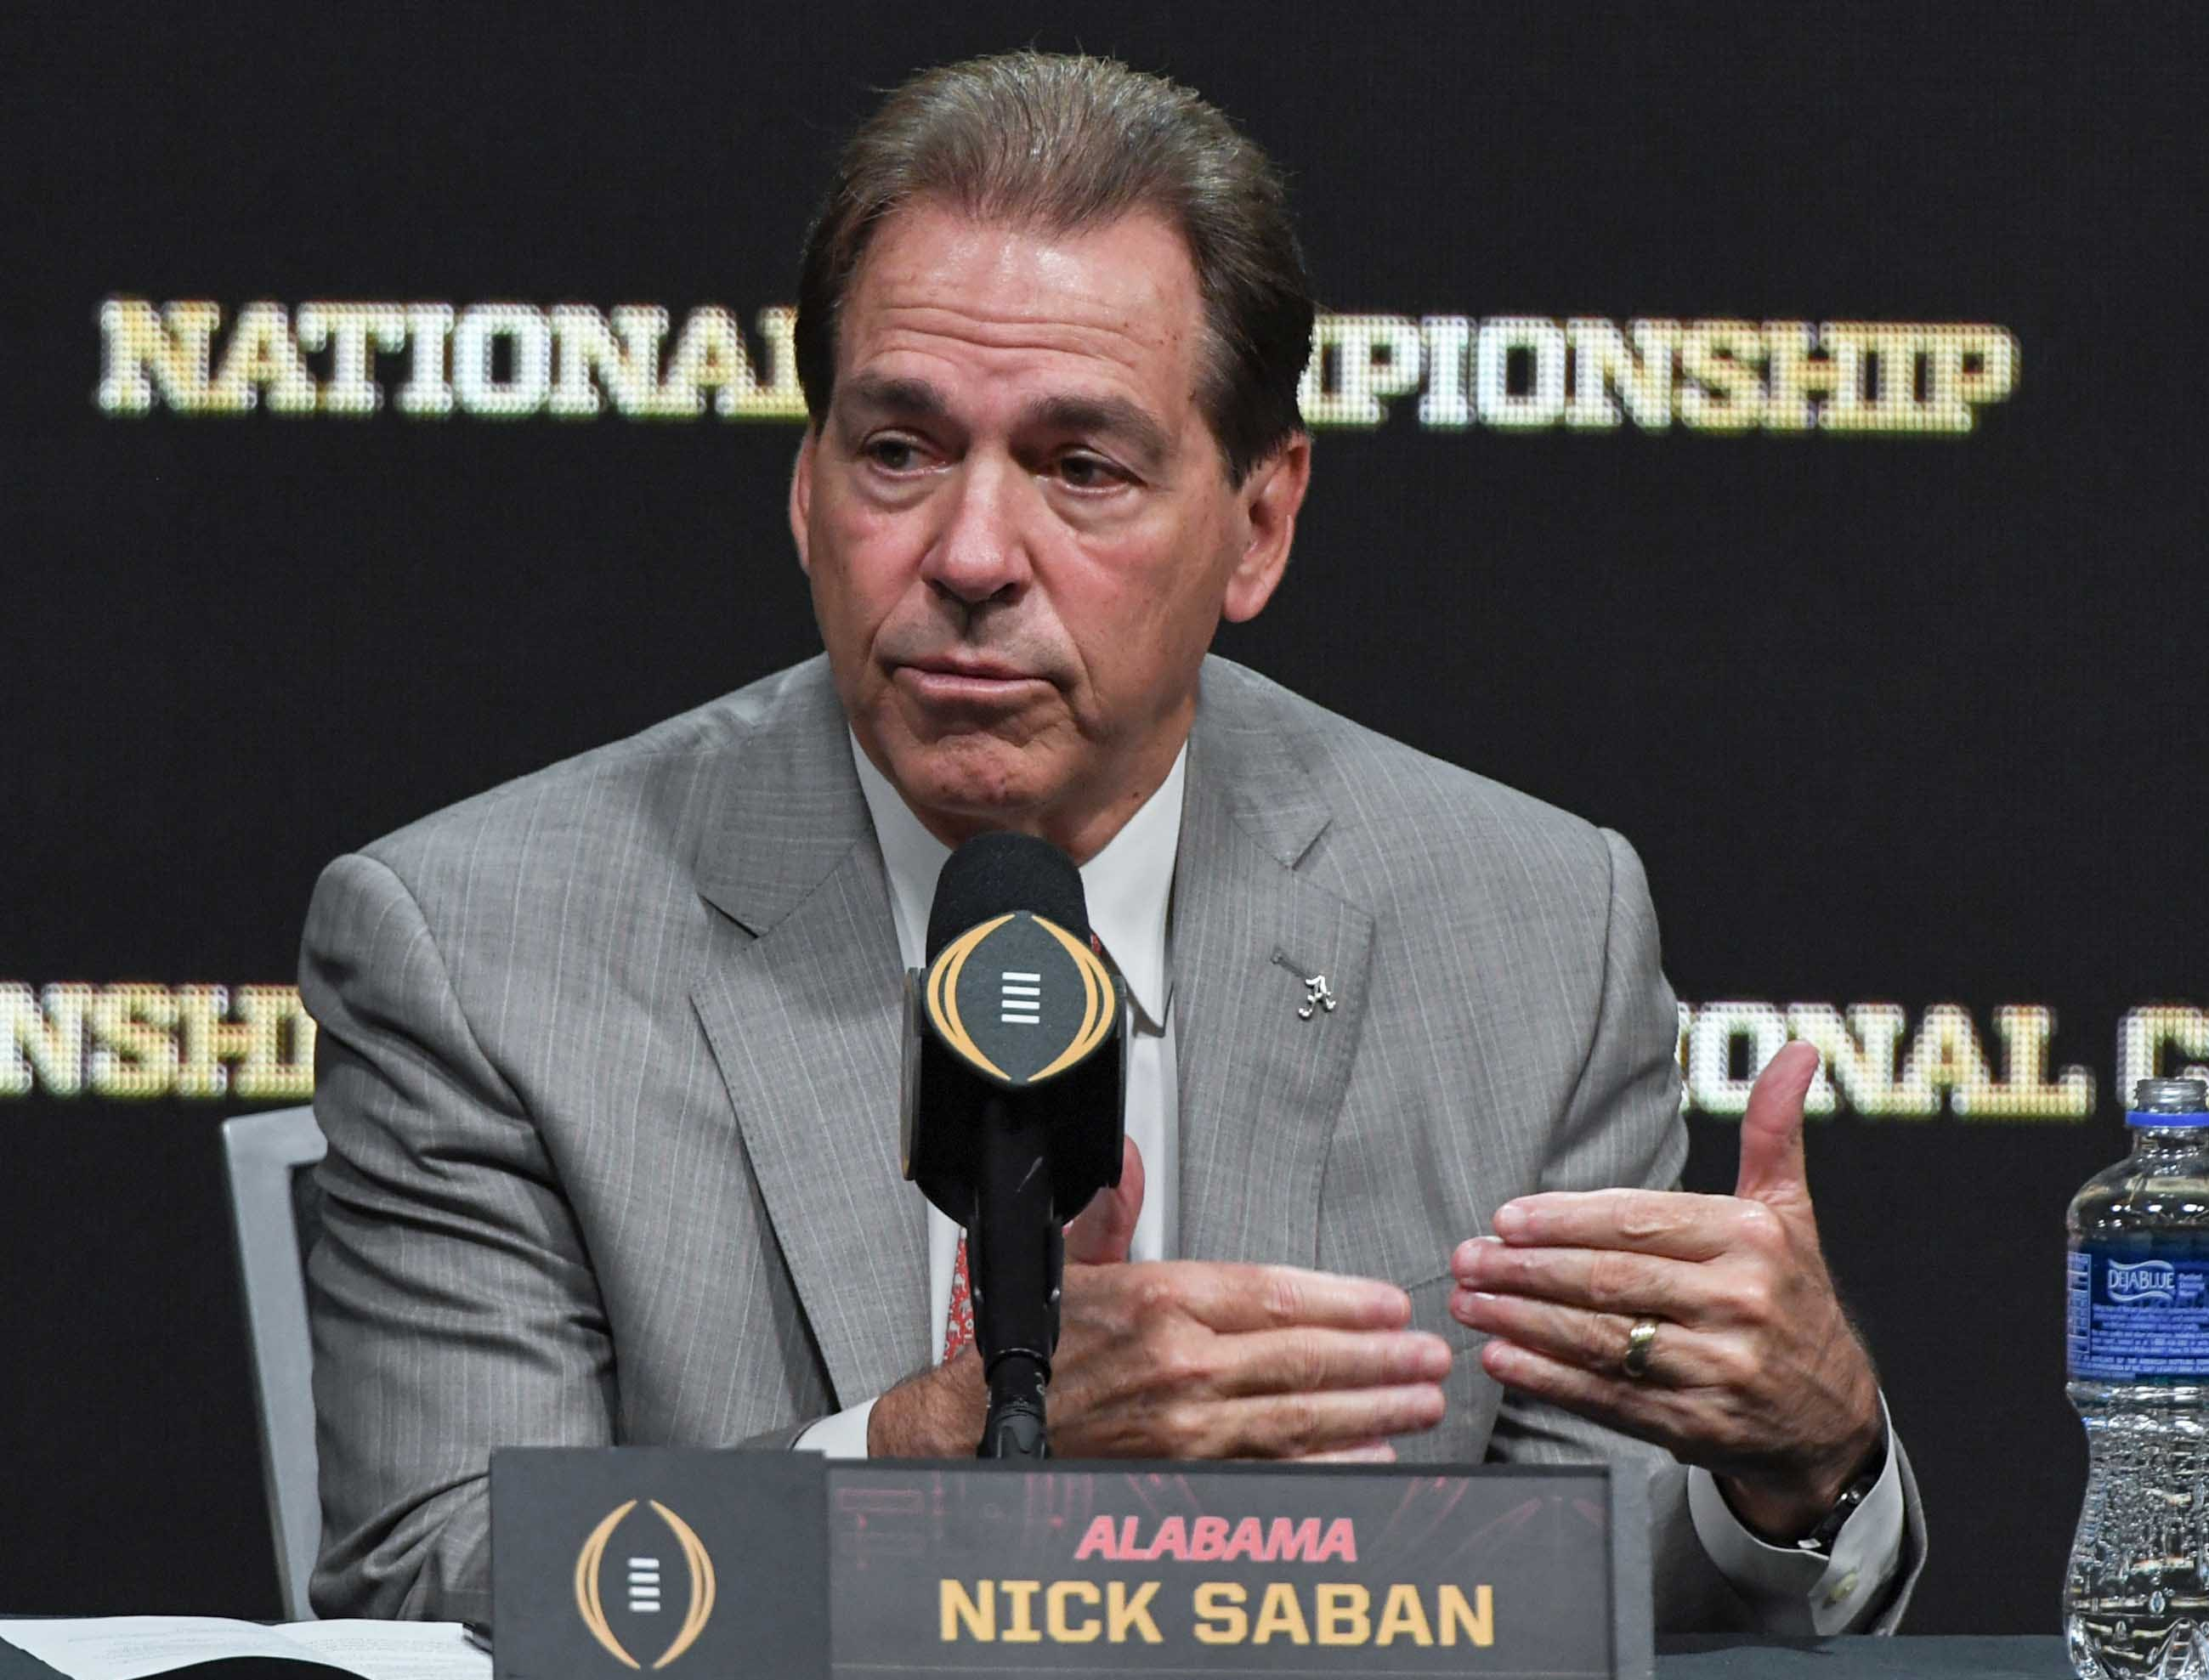 Alabama coach Nick Saban during the College Football Playoff Championship coaches press conference in San Jose, California January 6, 2019.